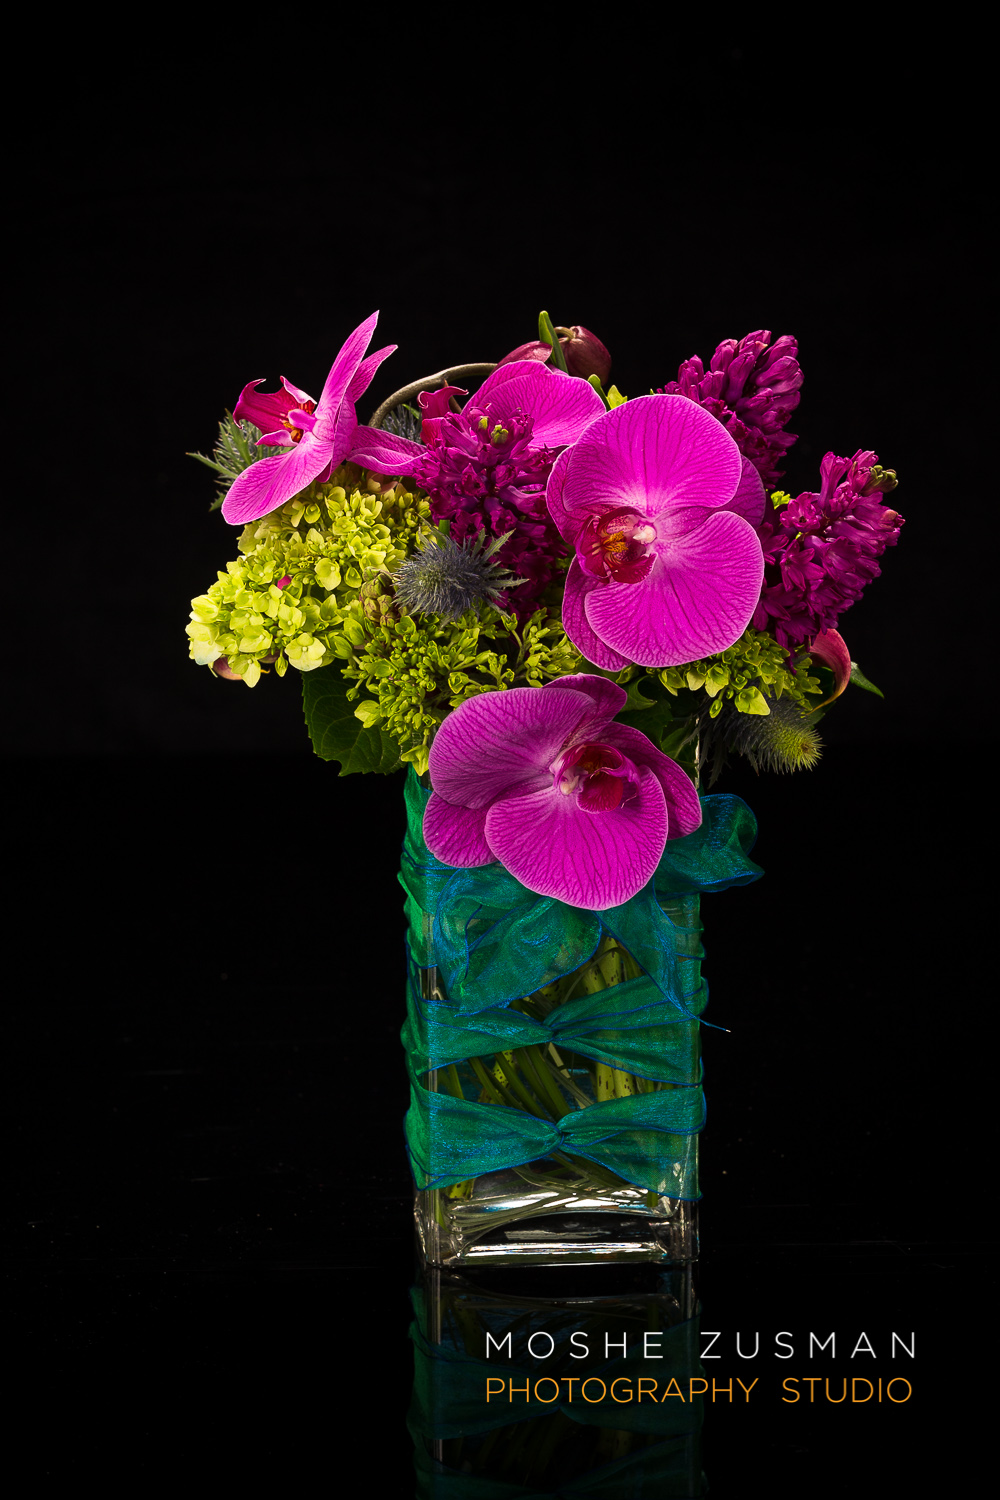 May_Flowers_Reston_Moshe_Zusman_Photography_Valentines_Flowers-03.jpg